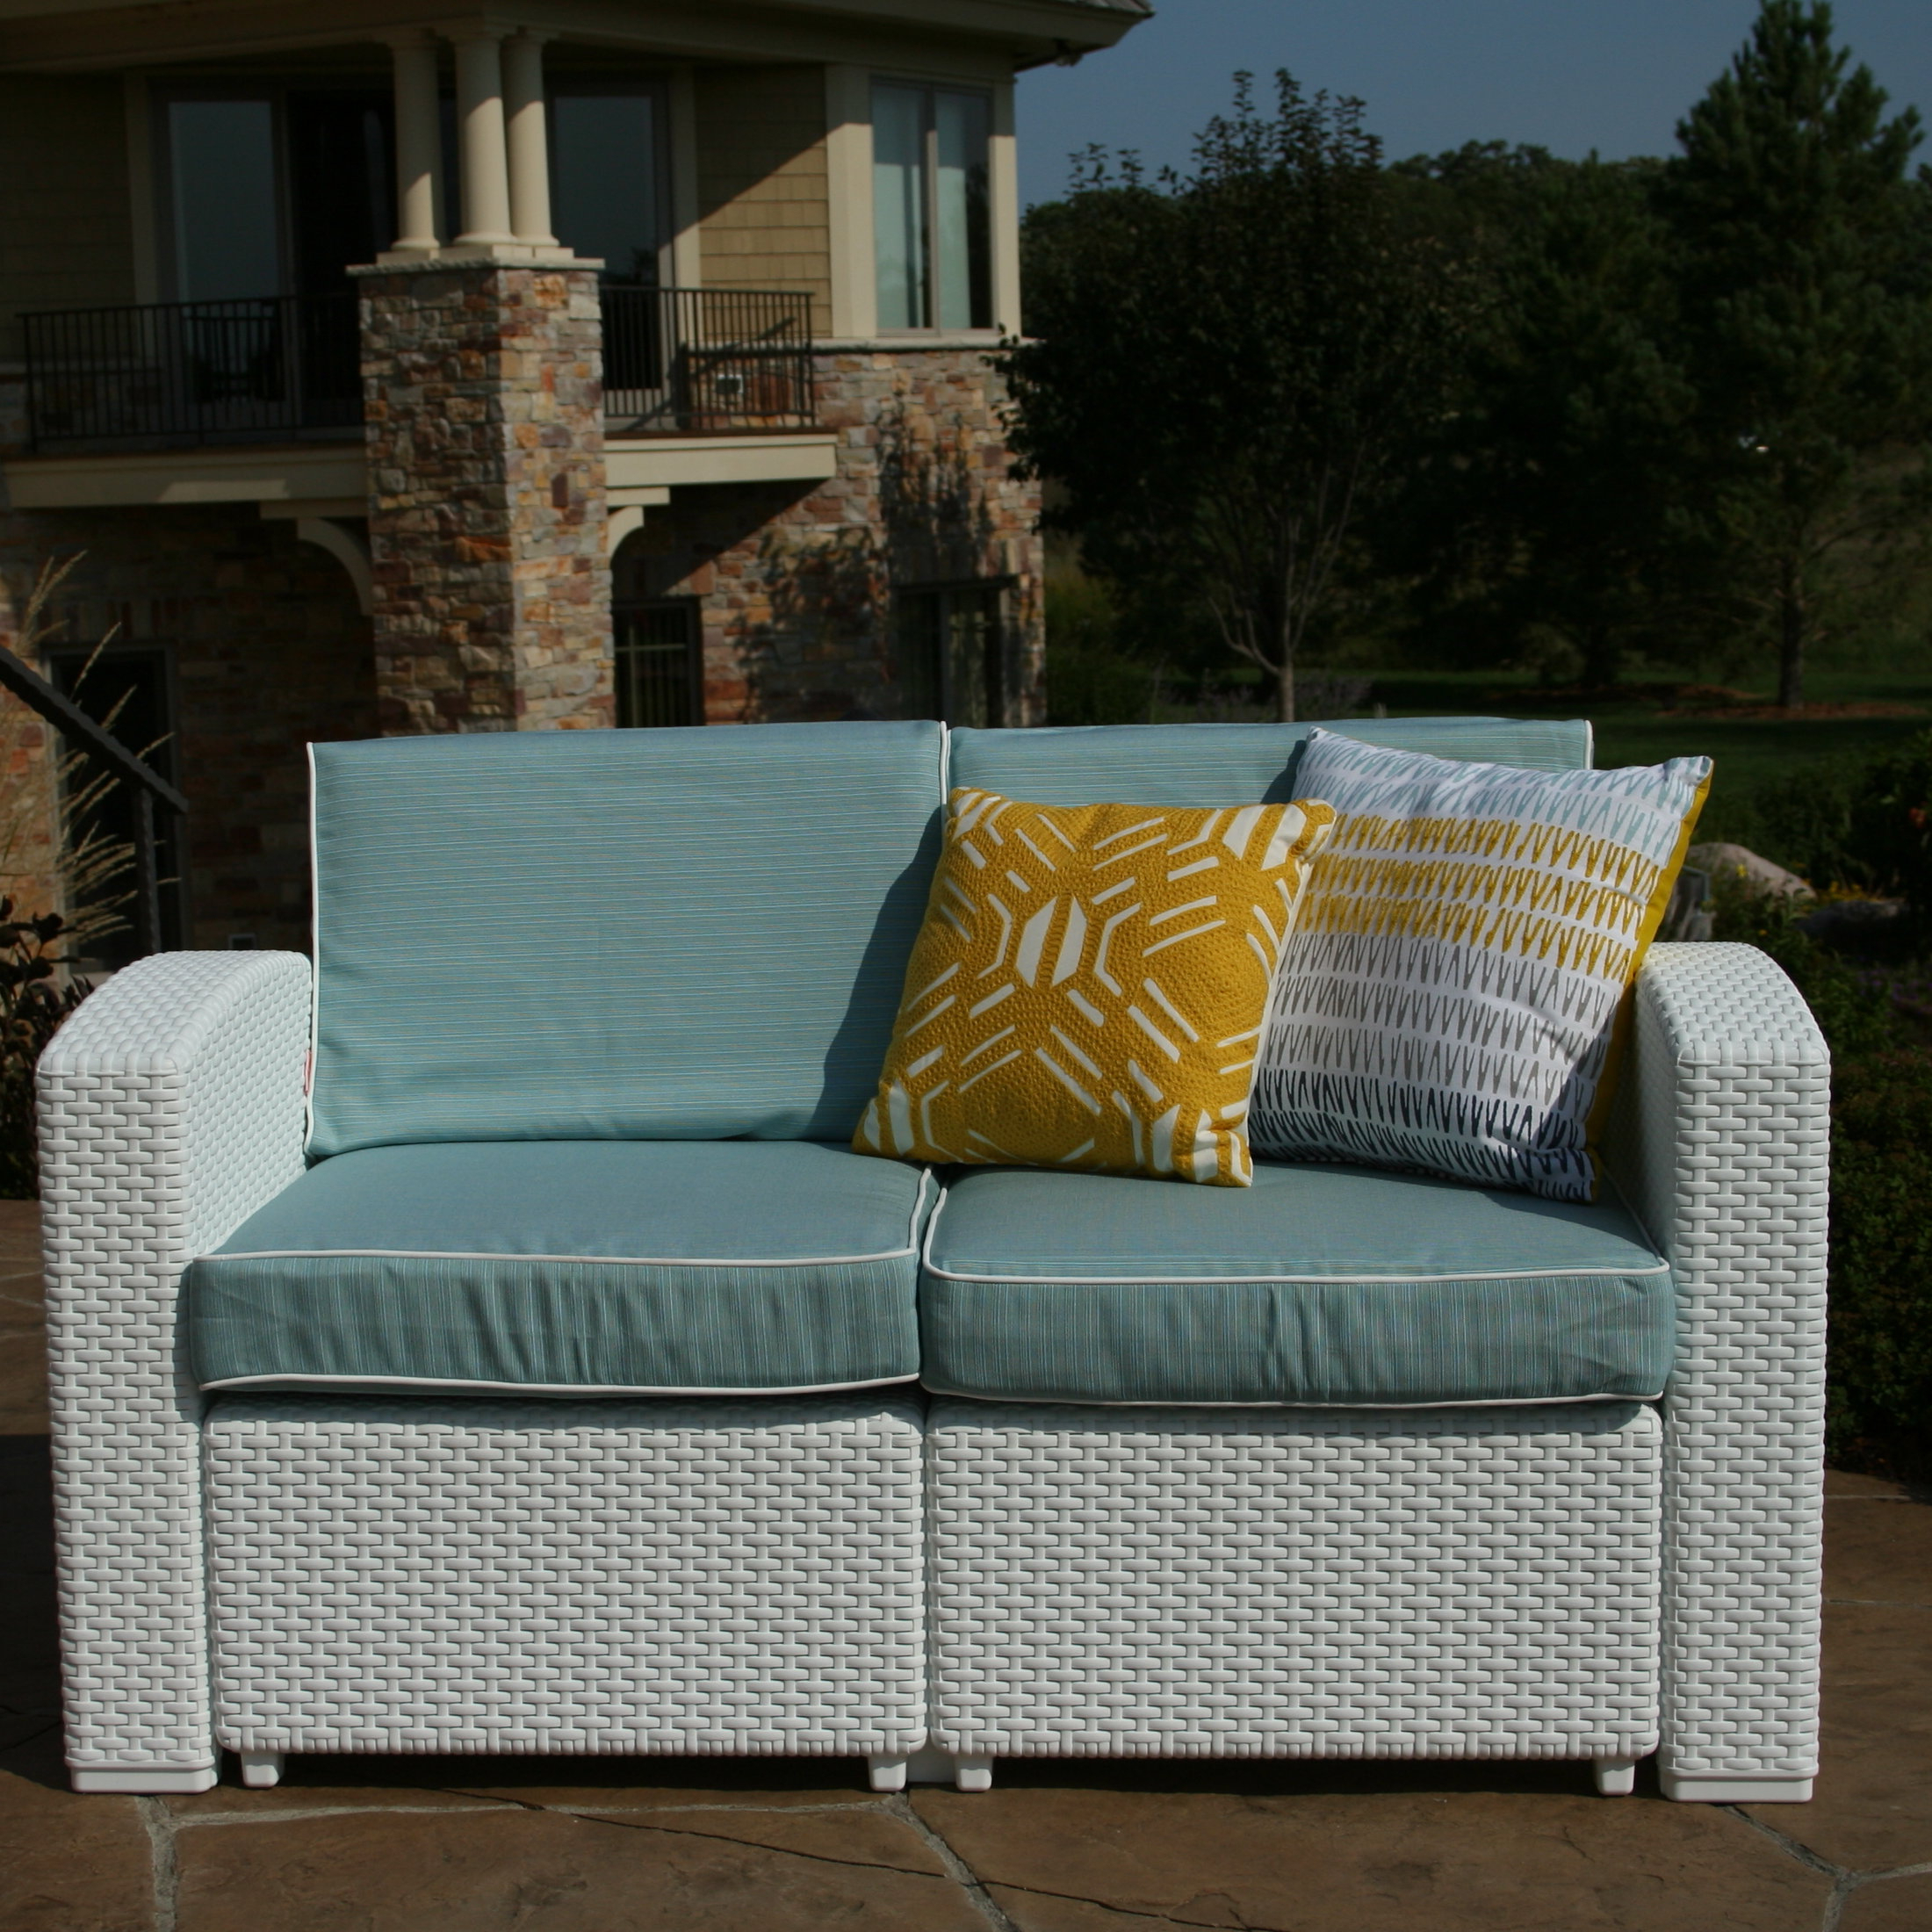 Mendelson Loveseats With Cushion Regarding Most Up To Date Loggins Patio Loveseat With Cushions (View 20 of 20)